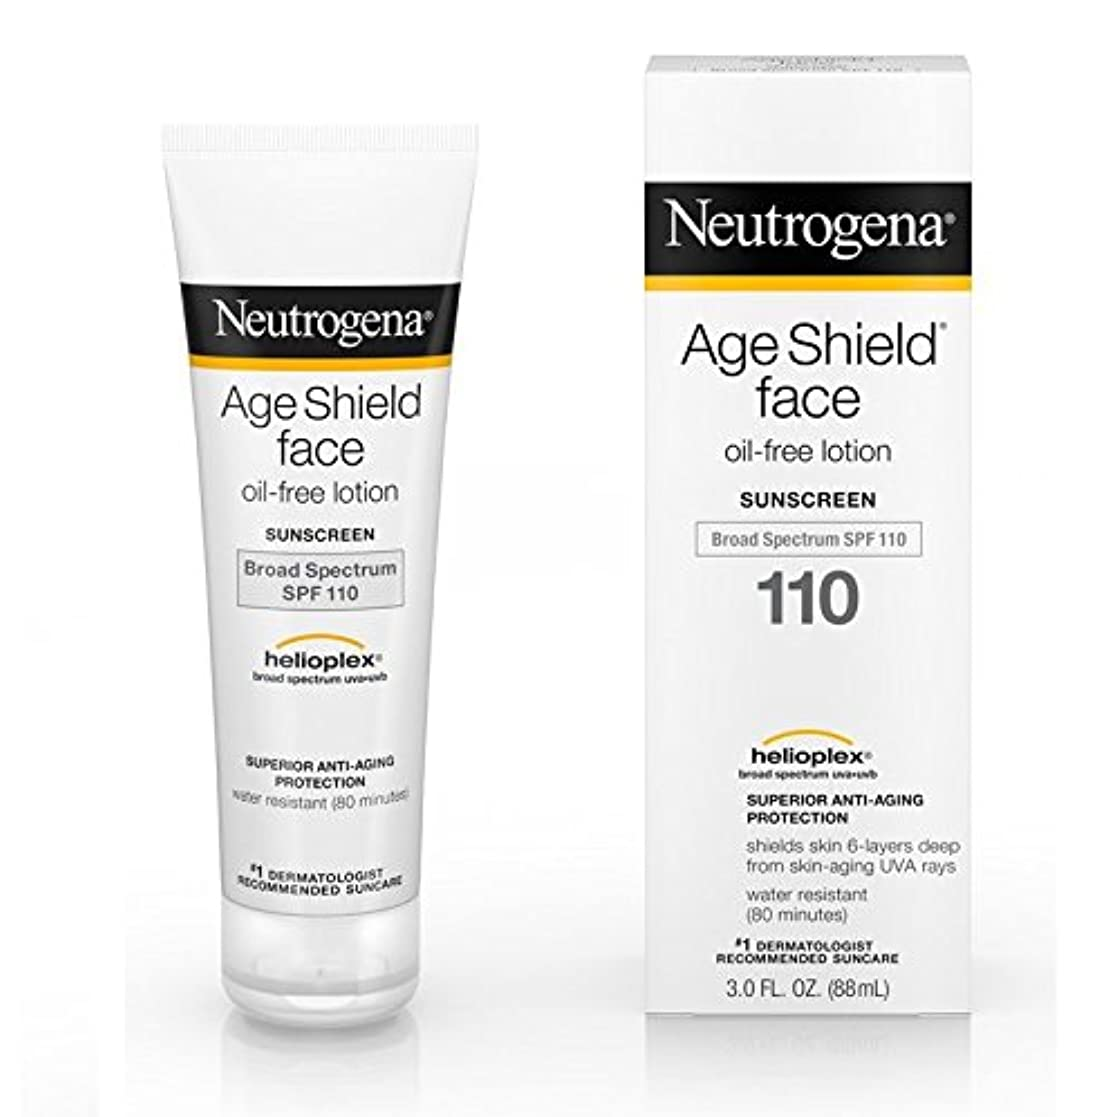 朝の体操をする広く葉巻【海外直送品】Neutrogena Age Shield® Face Oil-Free Lotion Sunscreen Broad Spectrum SPF 110 - 3 FL OZ(88ml)